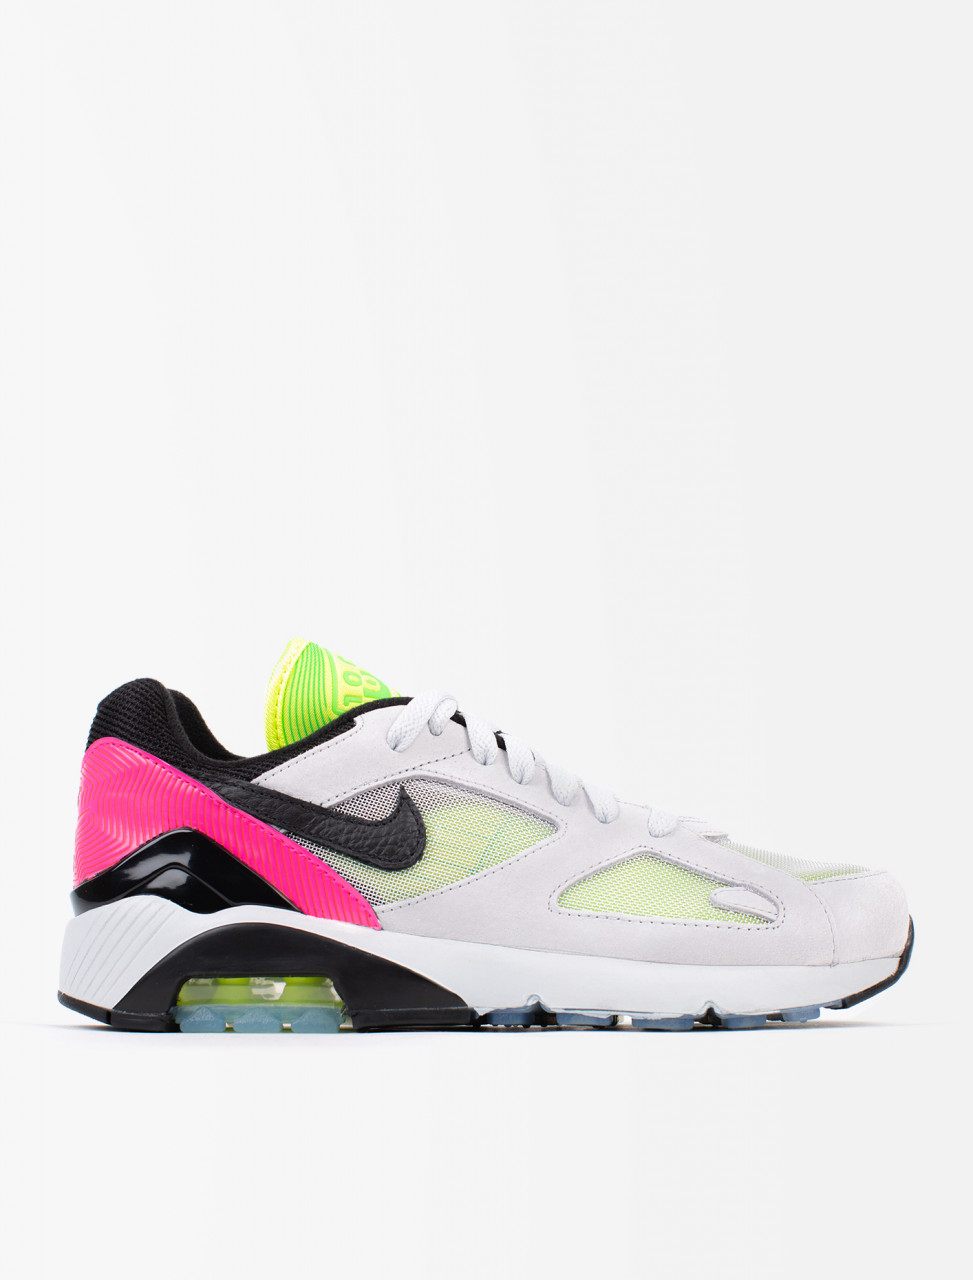 super popular 87c26 b2cca Air Max 180 Berlin